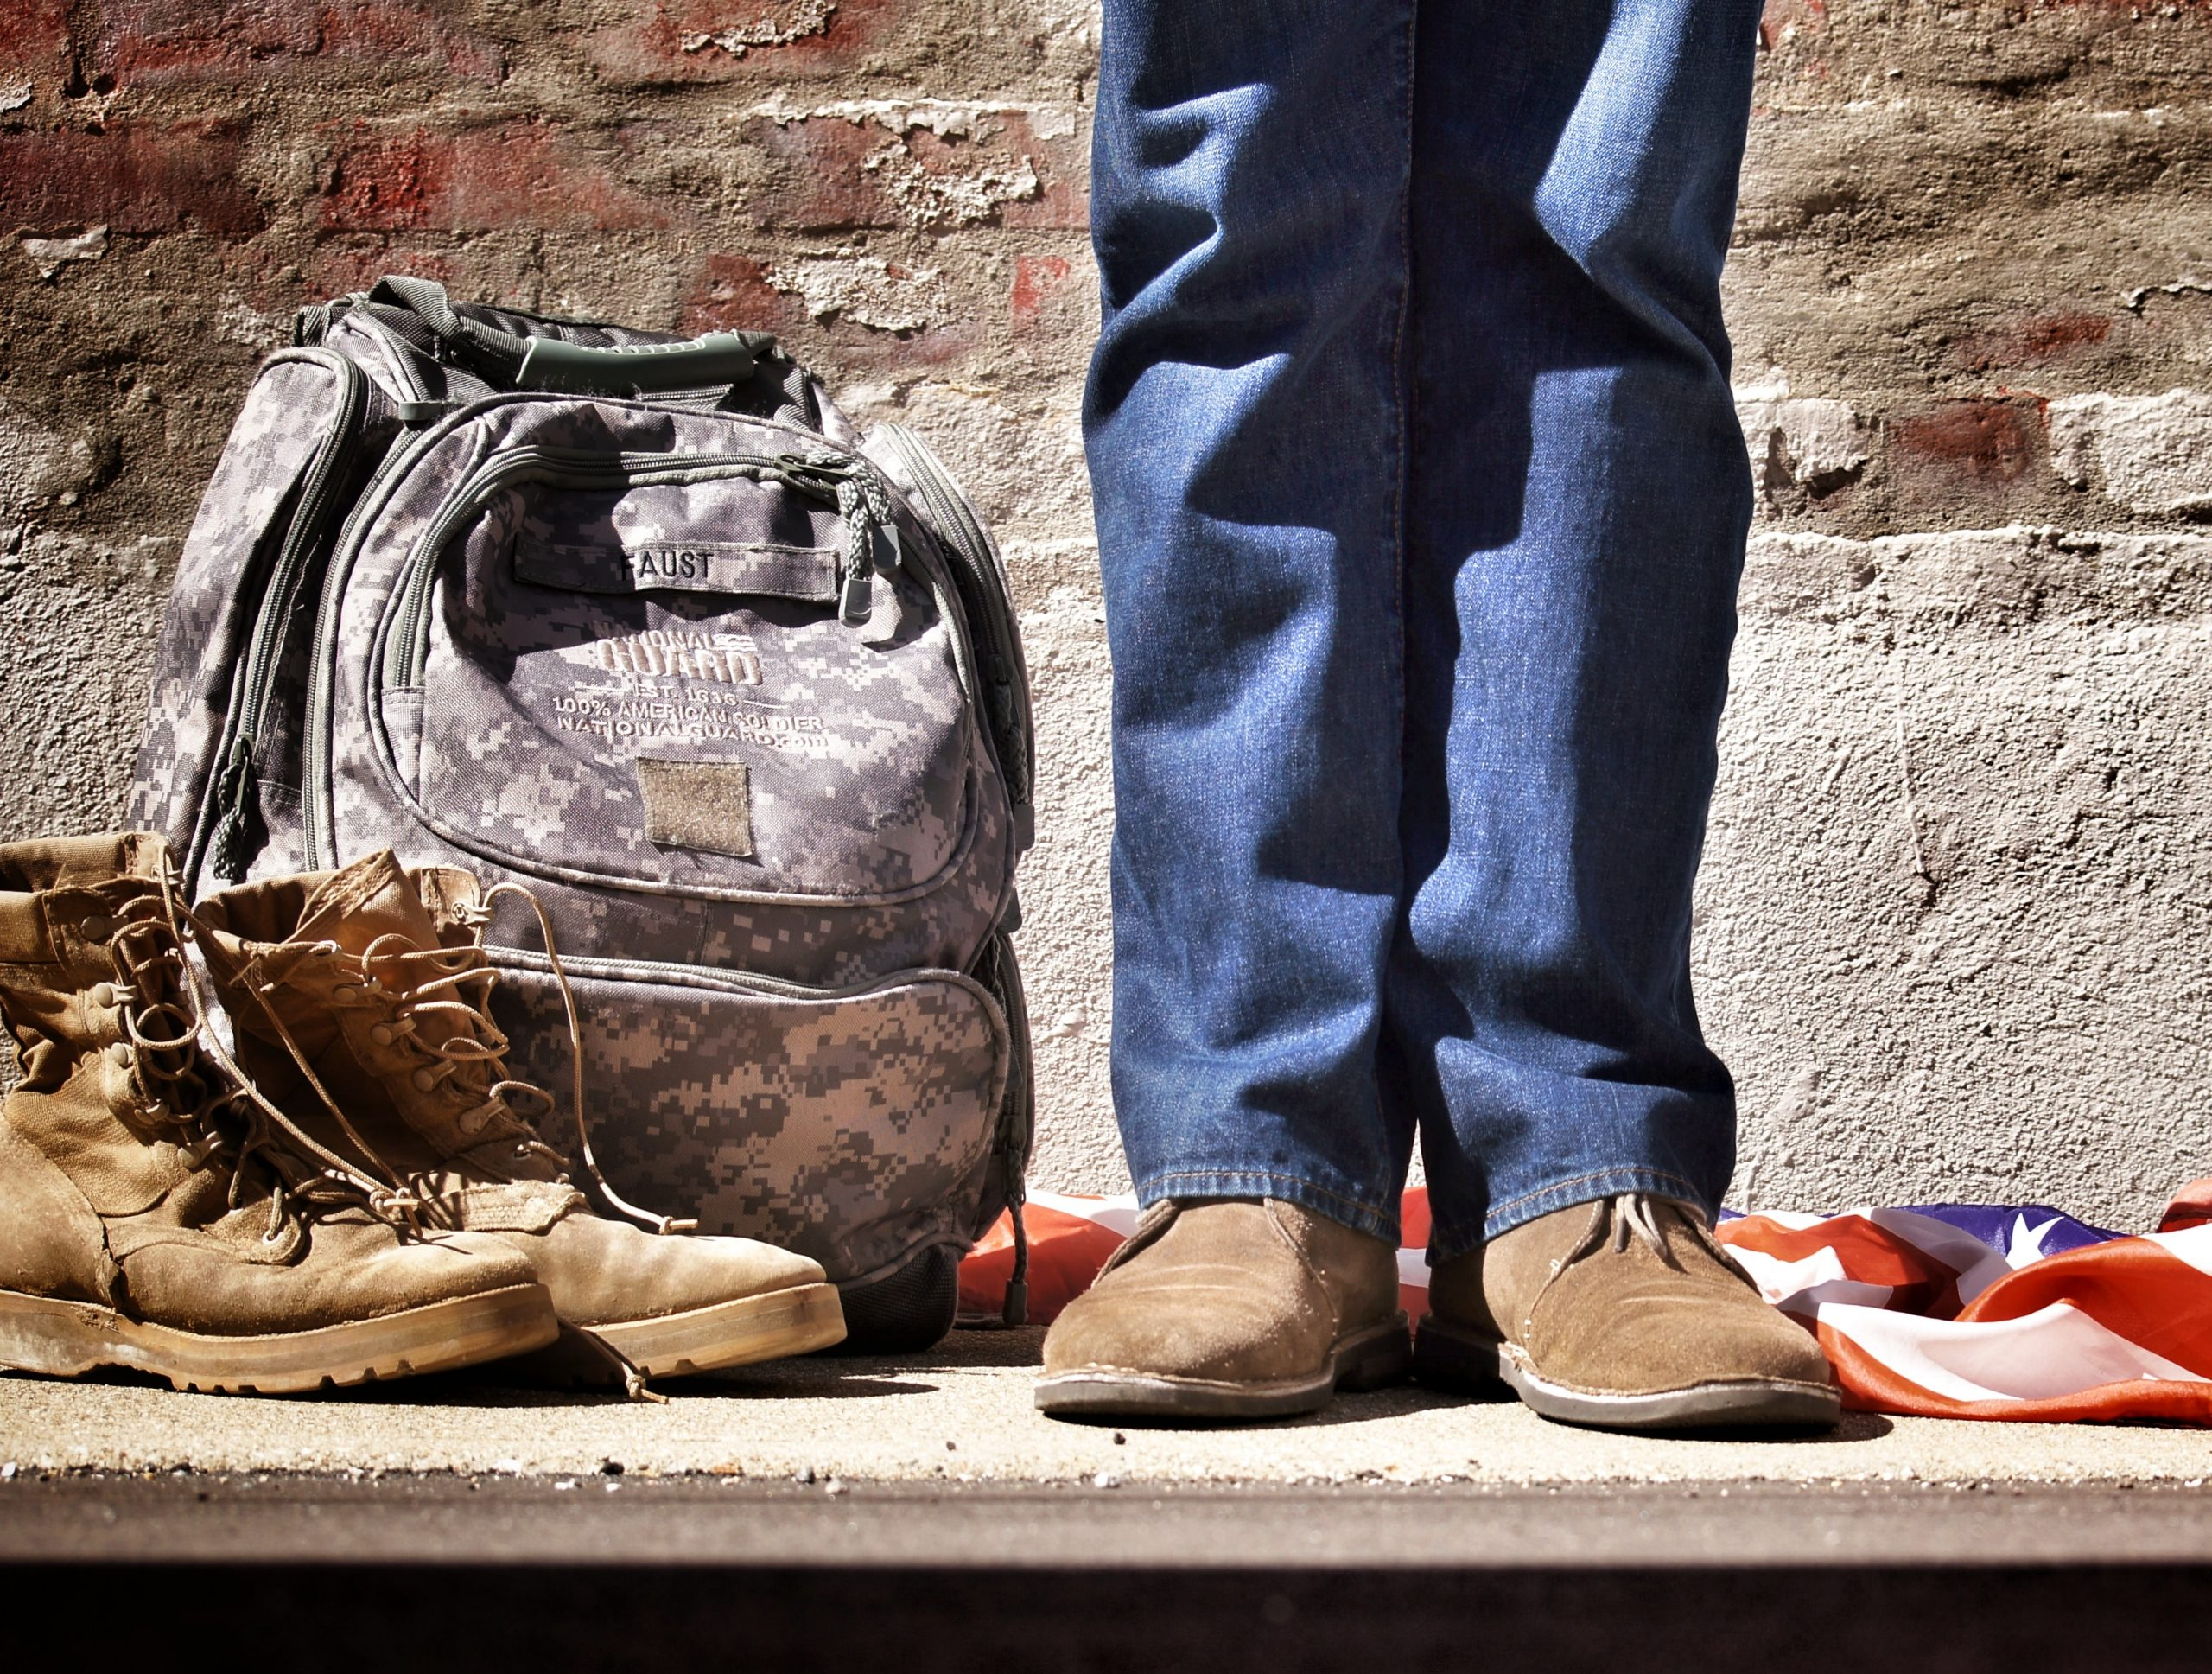 boots, camo bag, and flag on the ground with feet